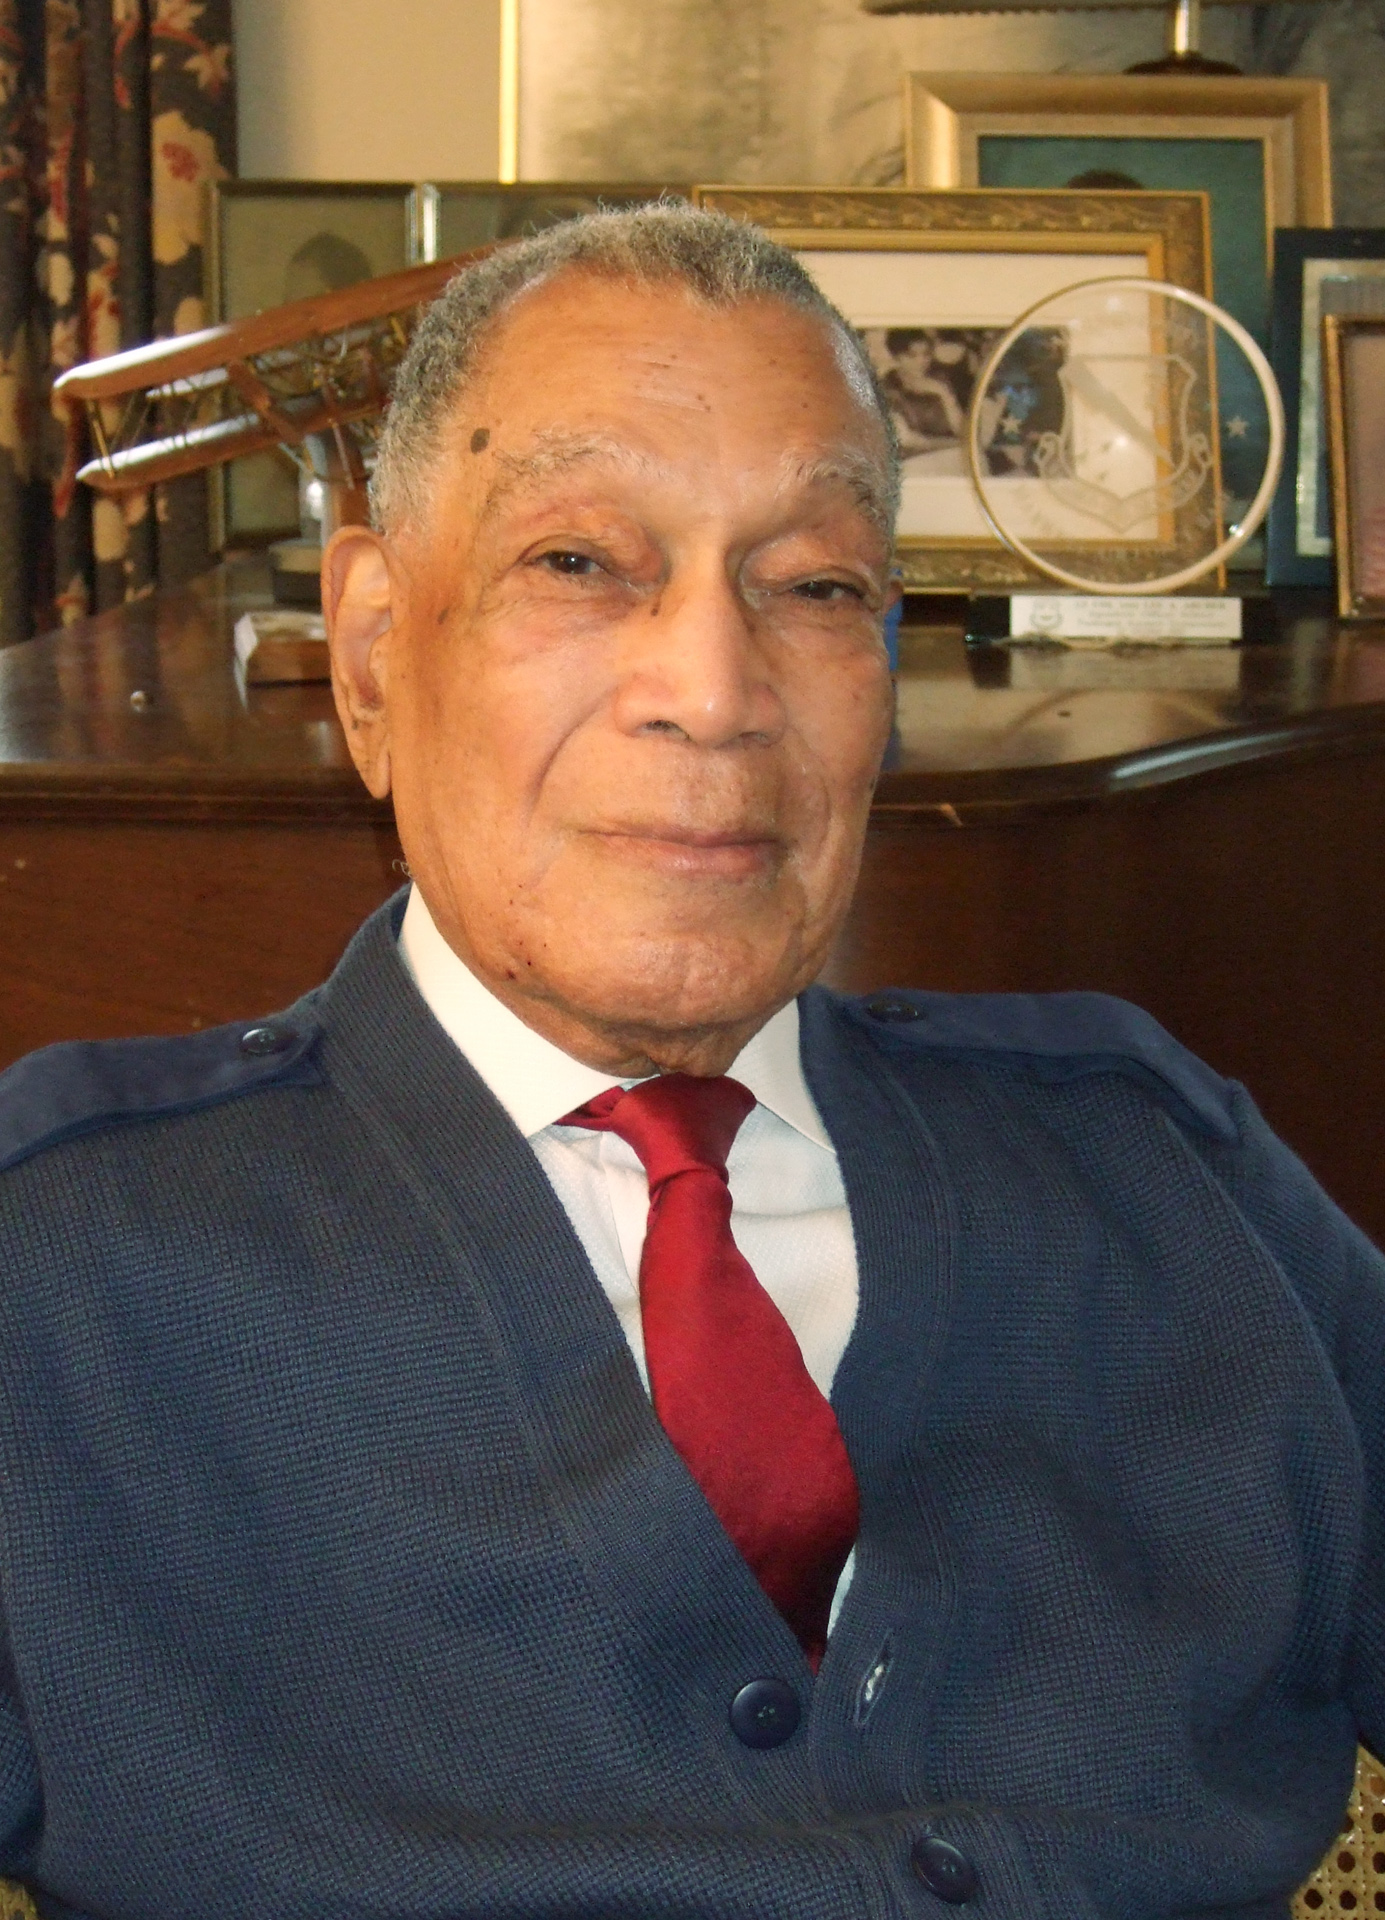 Retired Air Force Lt. Colonel Lee A. Archer is shown in this December 2008 photo provided by Beverly Herzog.